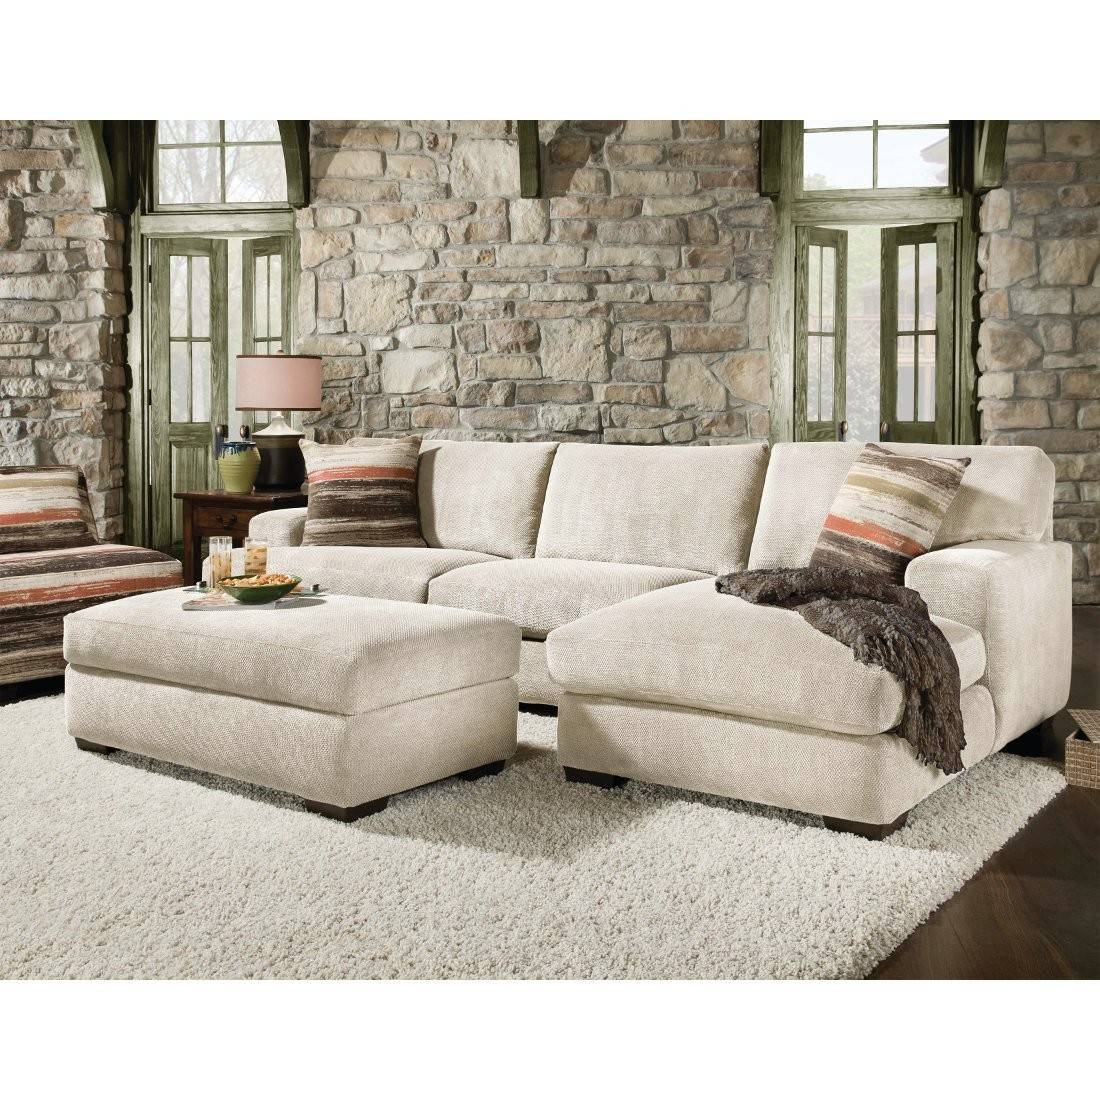 Furniture: Add Elegance And Style To Your Home With Extra Large with Chenille Sectional Sofas With Chaise (Image 7 of 15)